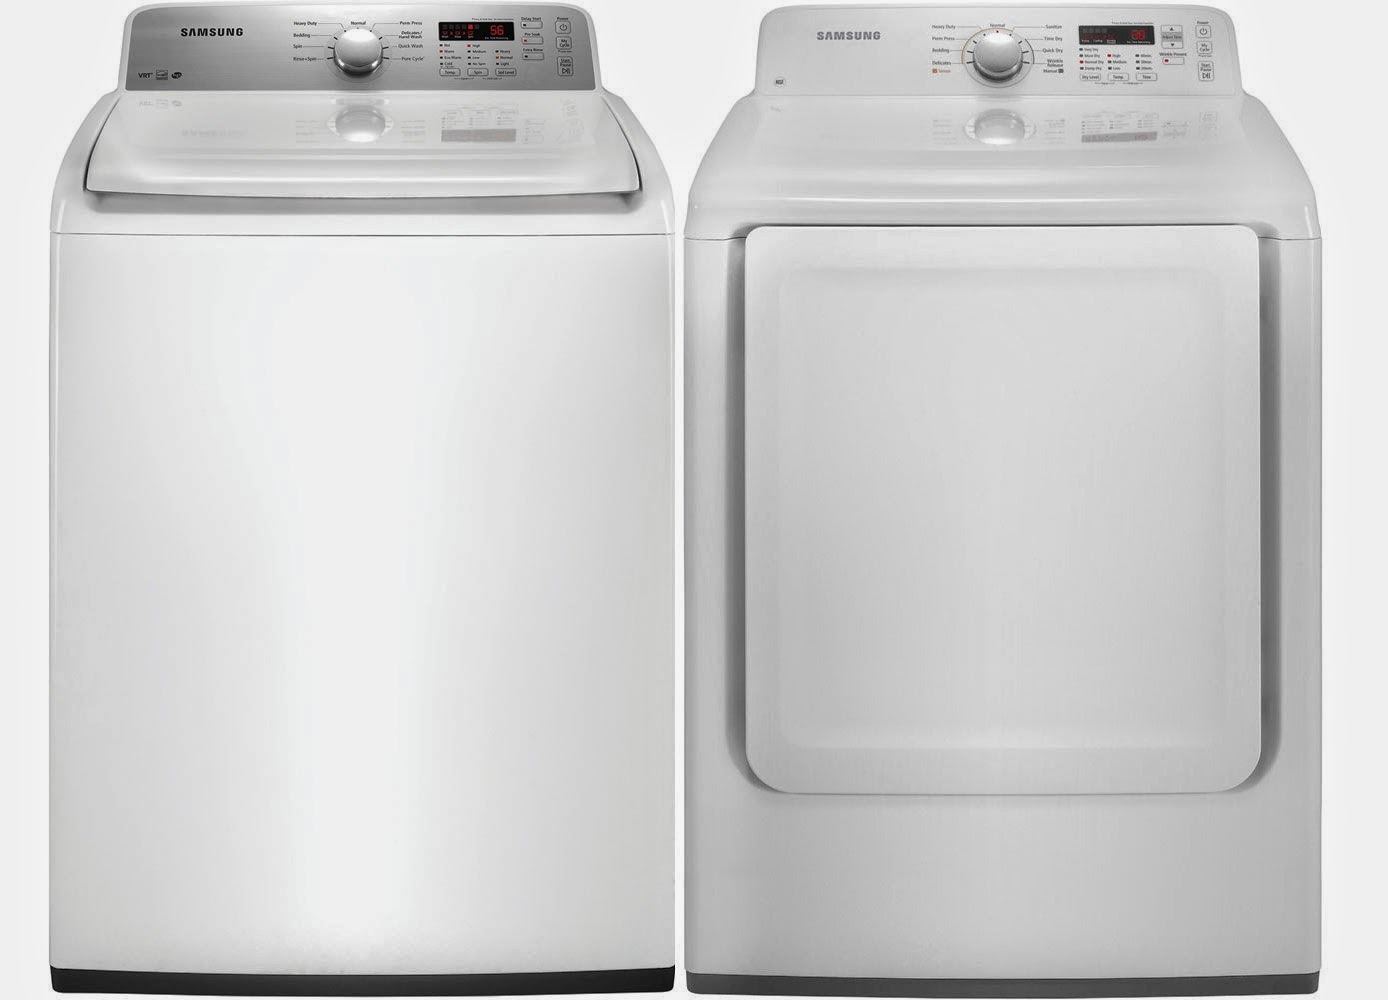 The best top load washer and dryer combo 2015 - The Best Top Load Washer And Dryer Combo 2015 6